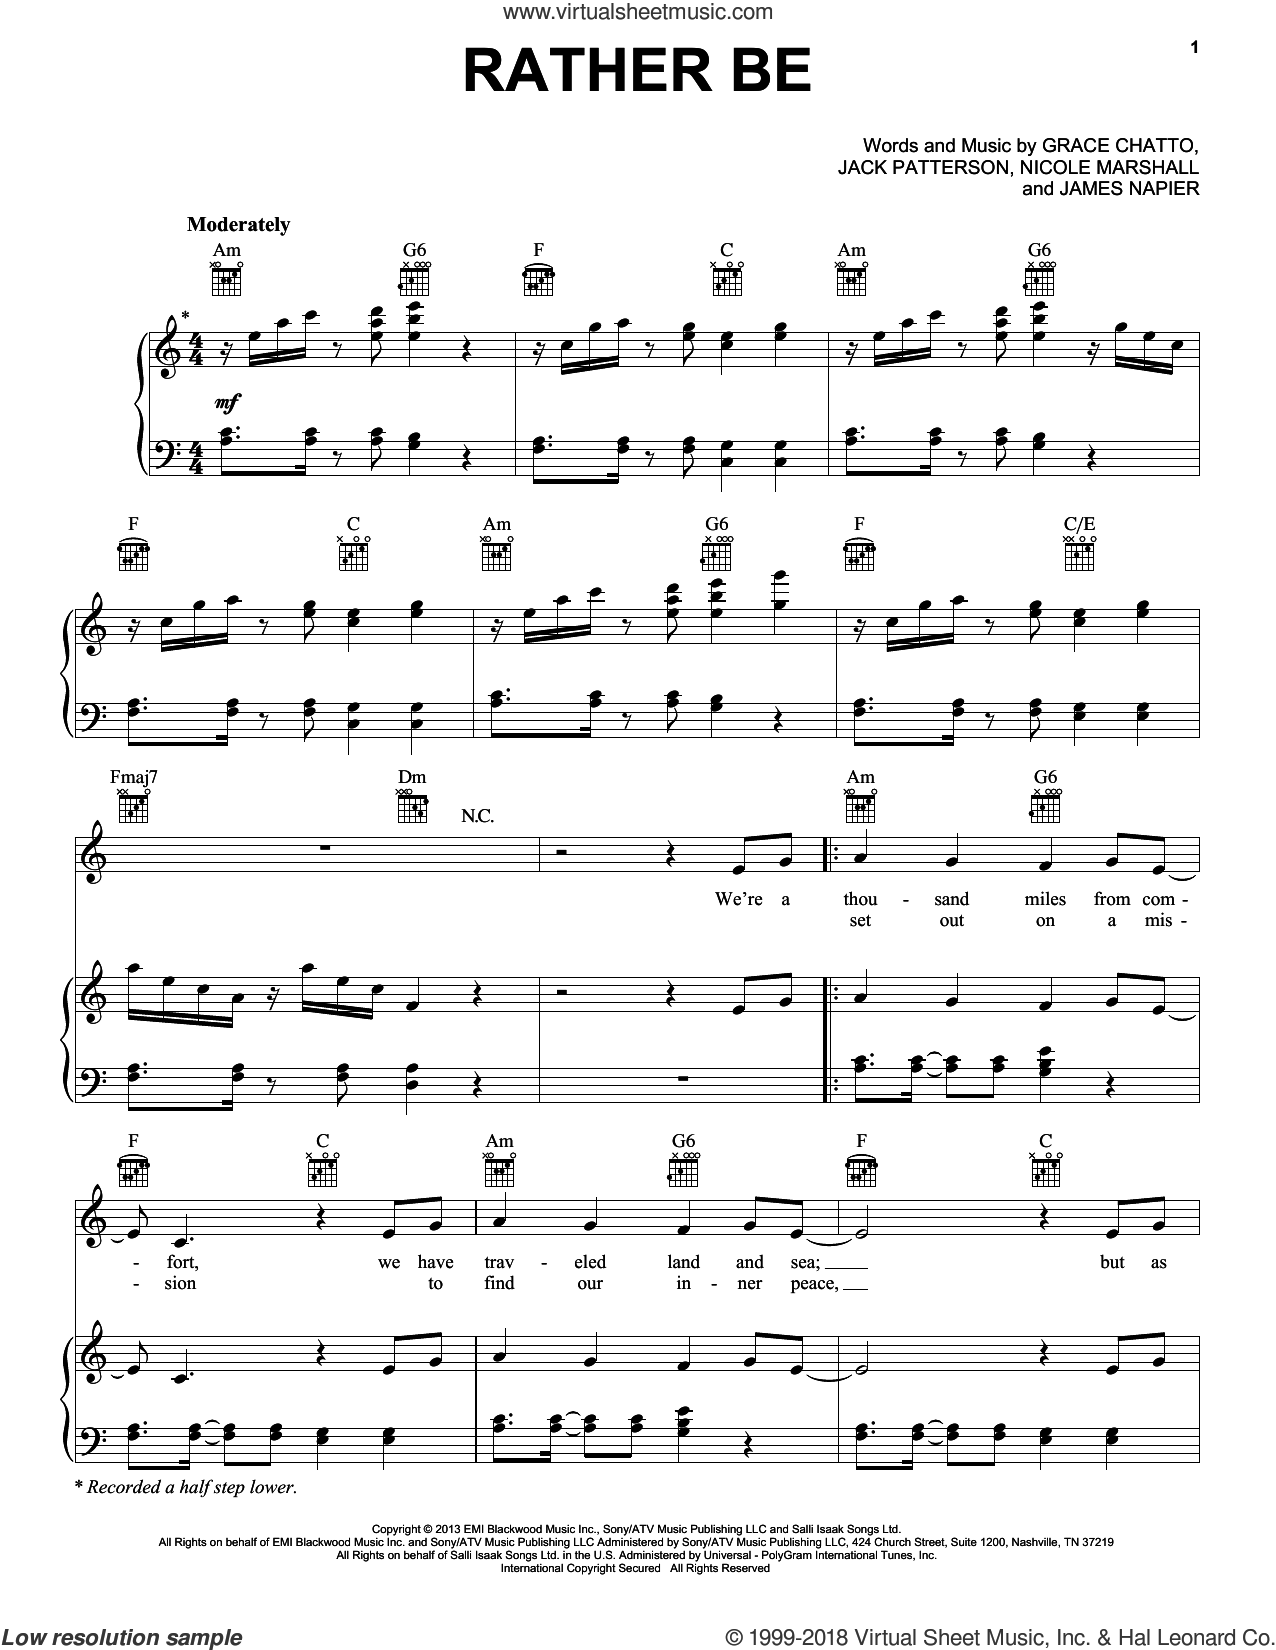 Rather Be sheet music for voice, piano or guitar by Clean Bandit feat. Jess Glynne, Clean Bandit, Grace Chatto, Jack Patterson, James Napier and Nicole Marshall, intermediate skill level